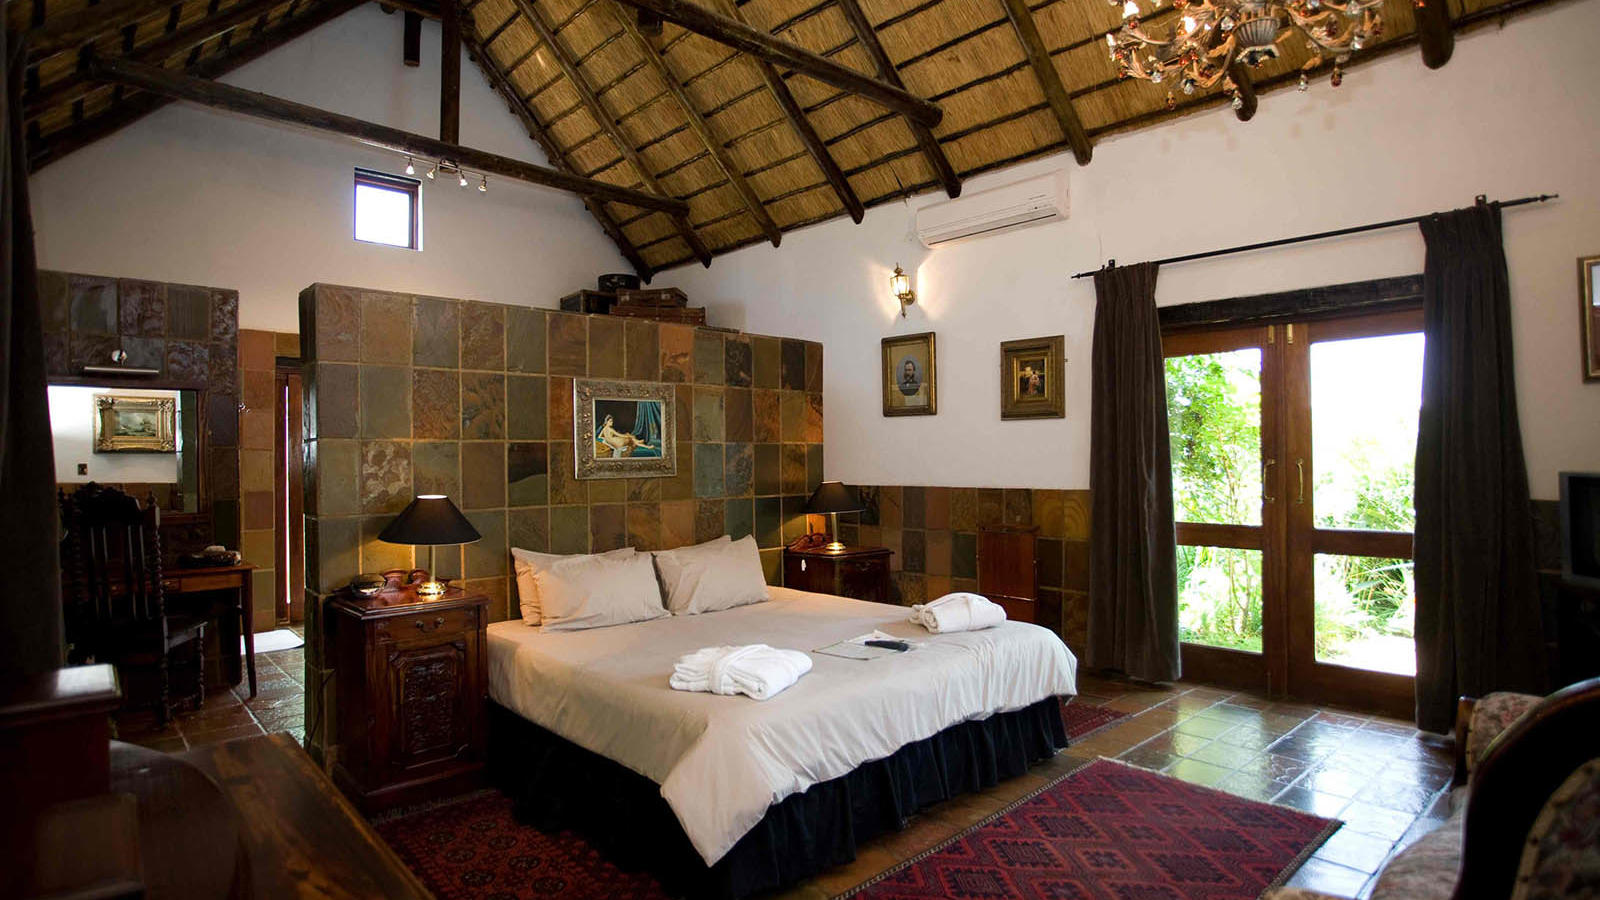 Royal room at Kedar Heritage Lodge by Warwick